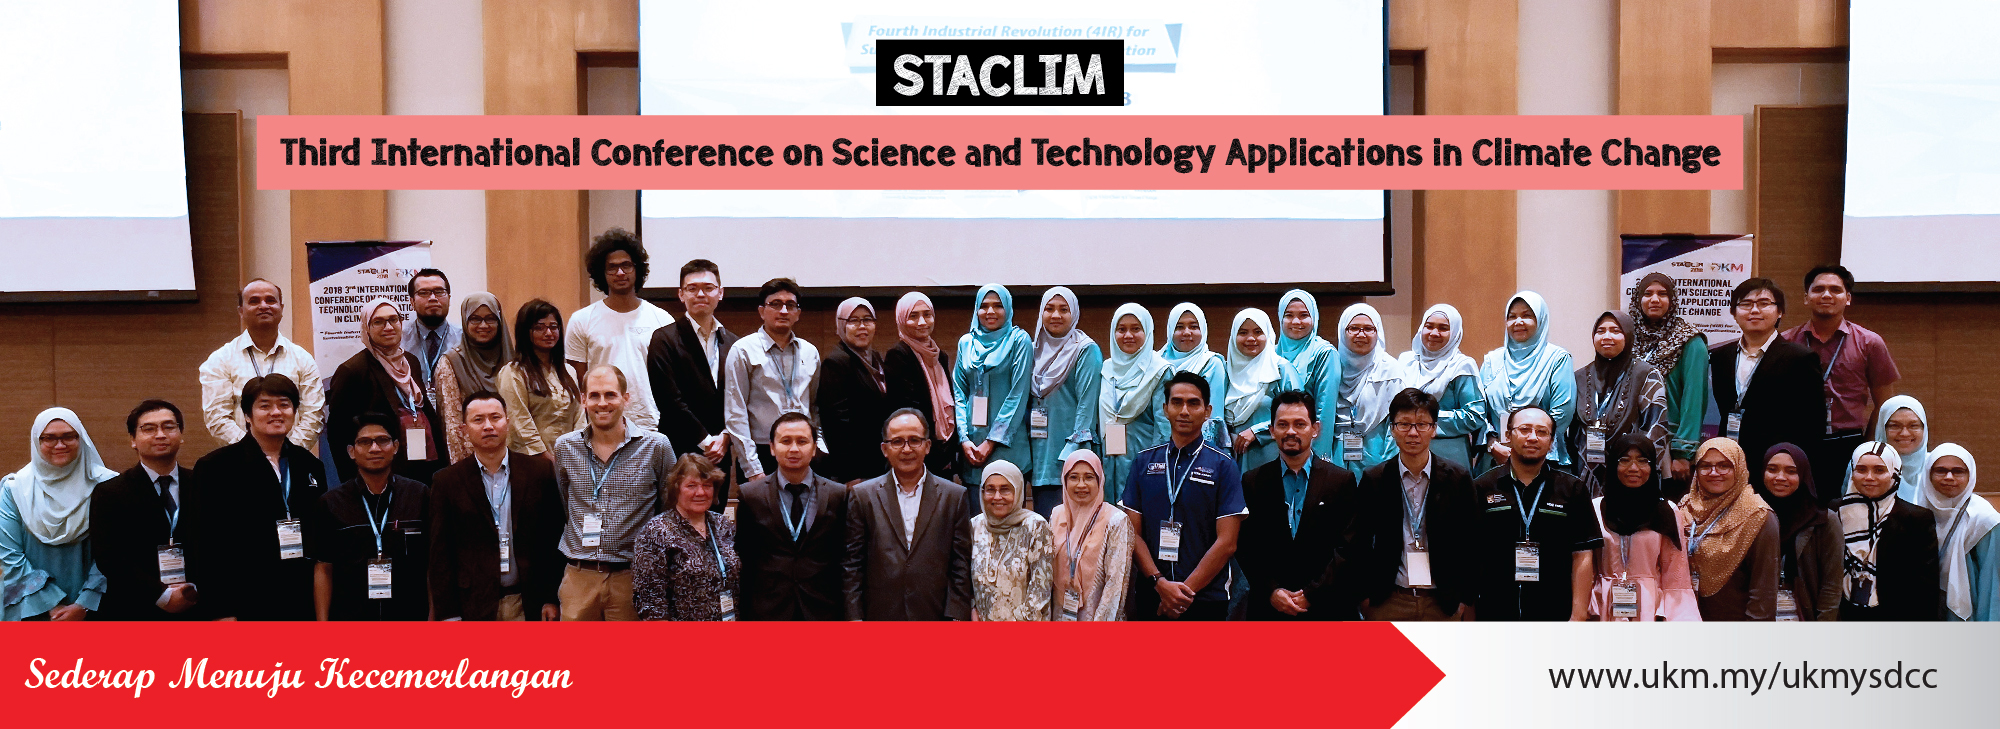 Third International Conference on Science and Technology Applications in Climate Change (STACLIM 2018)